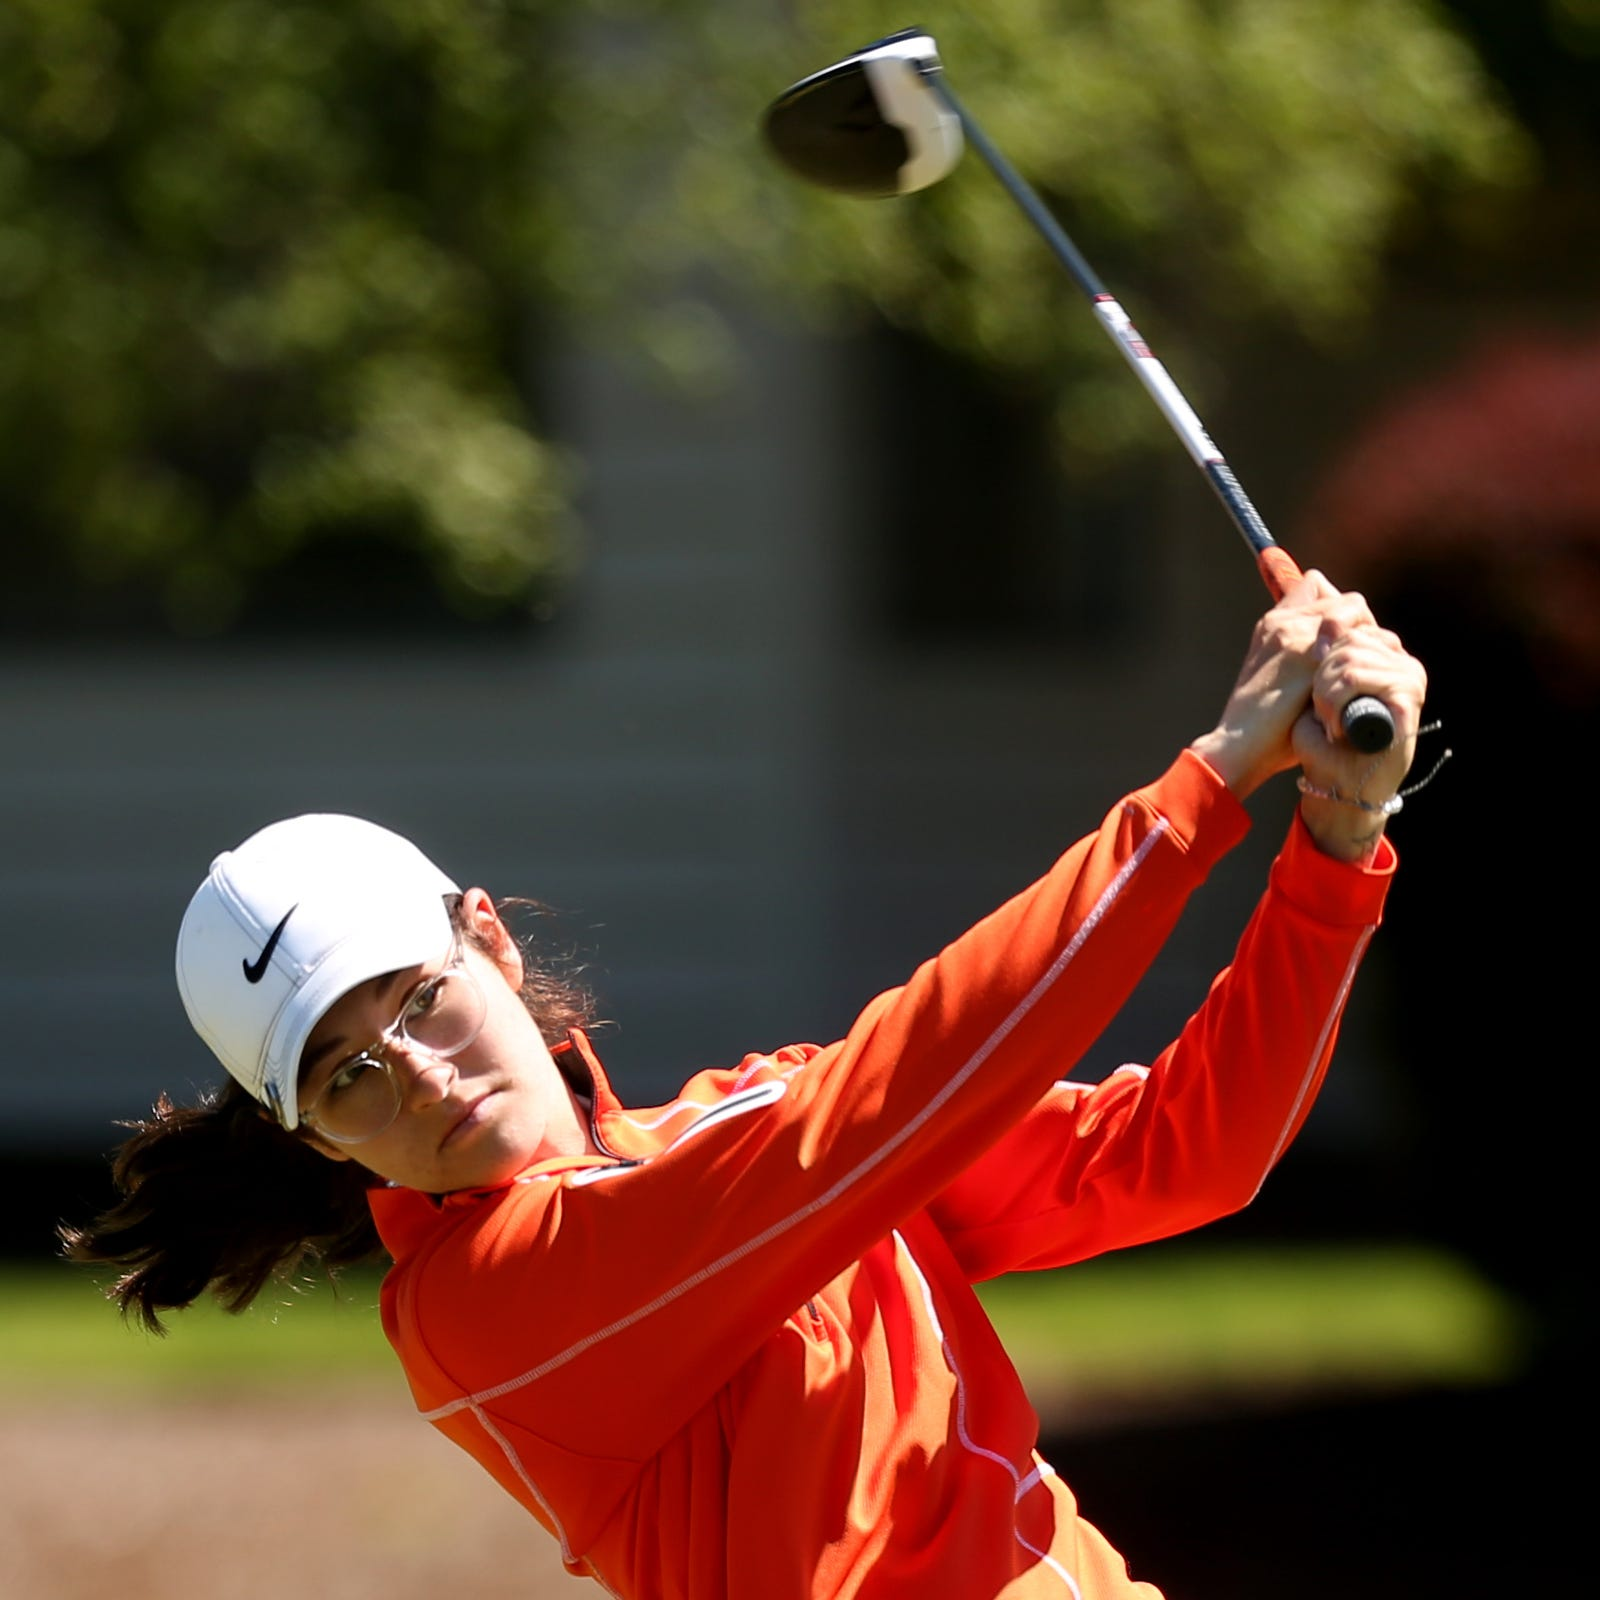 Sprague's Quincy Beyrouty going for it all in final state golf tournament